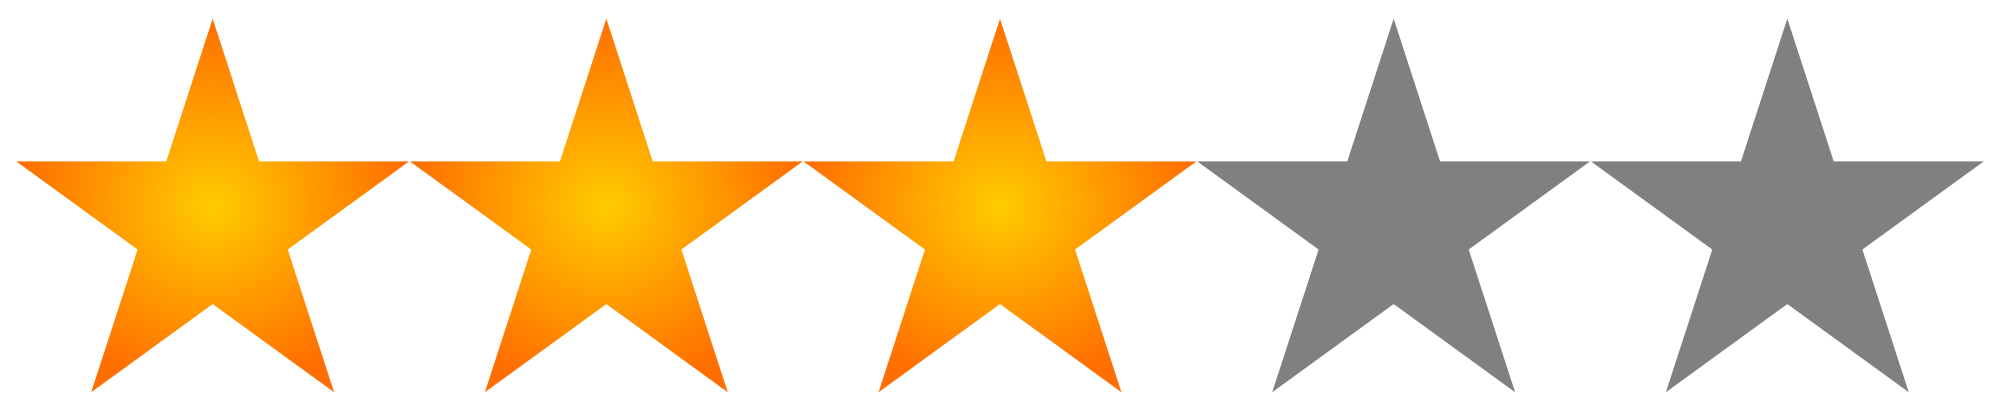 3 out of 5 stars png. File svg wikimedia commons